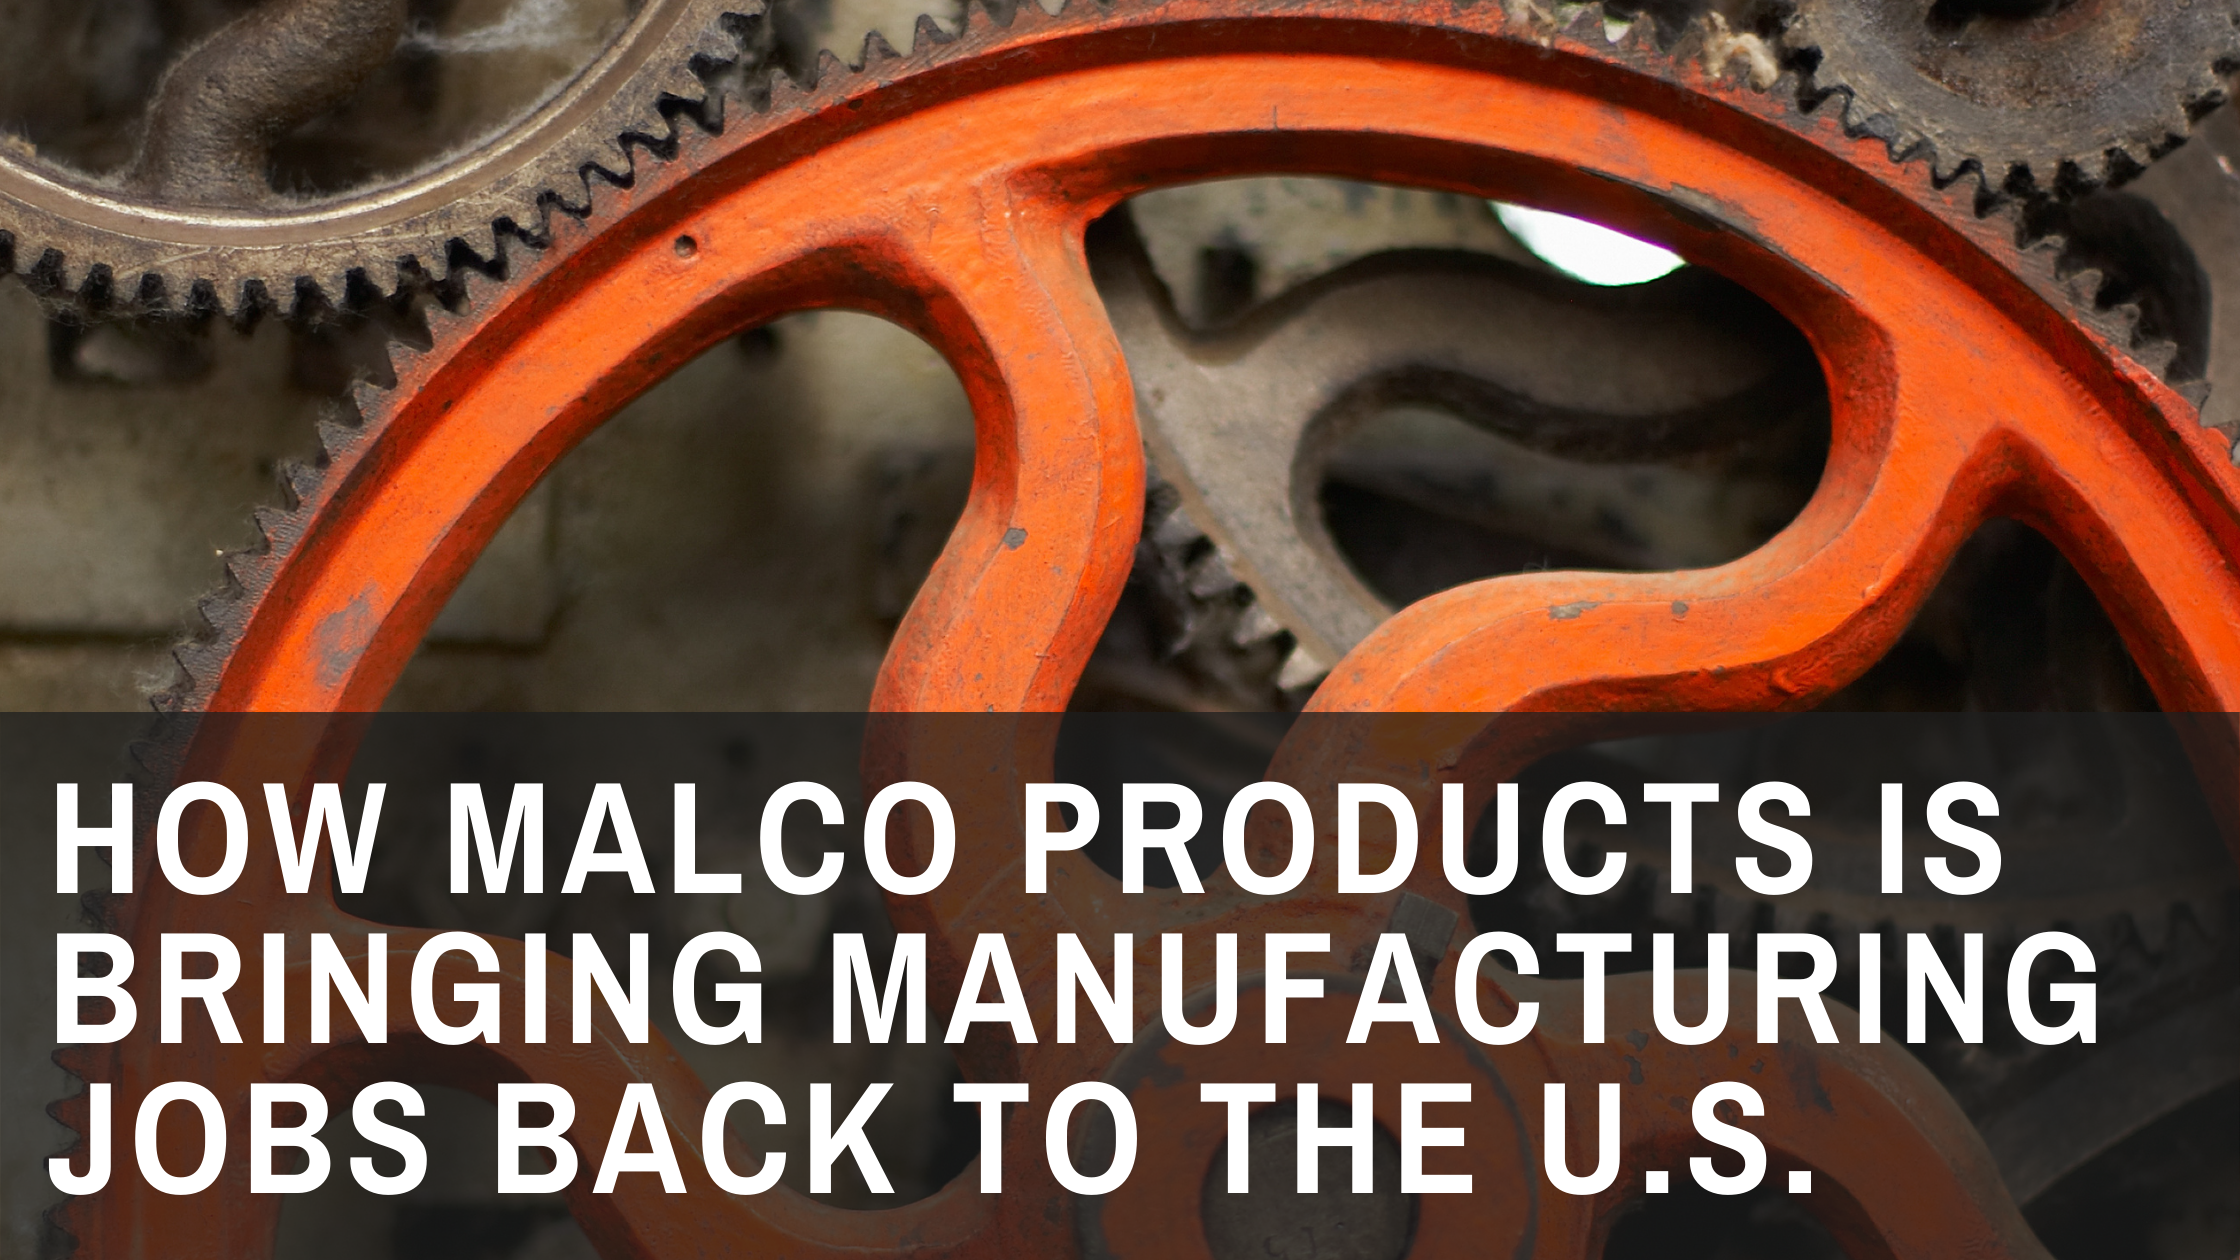 How Malco Products is Bringing Manufacturing Jobs Back To The U.S.